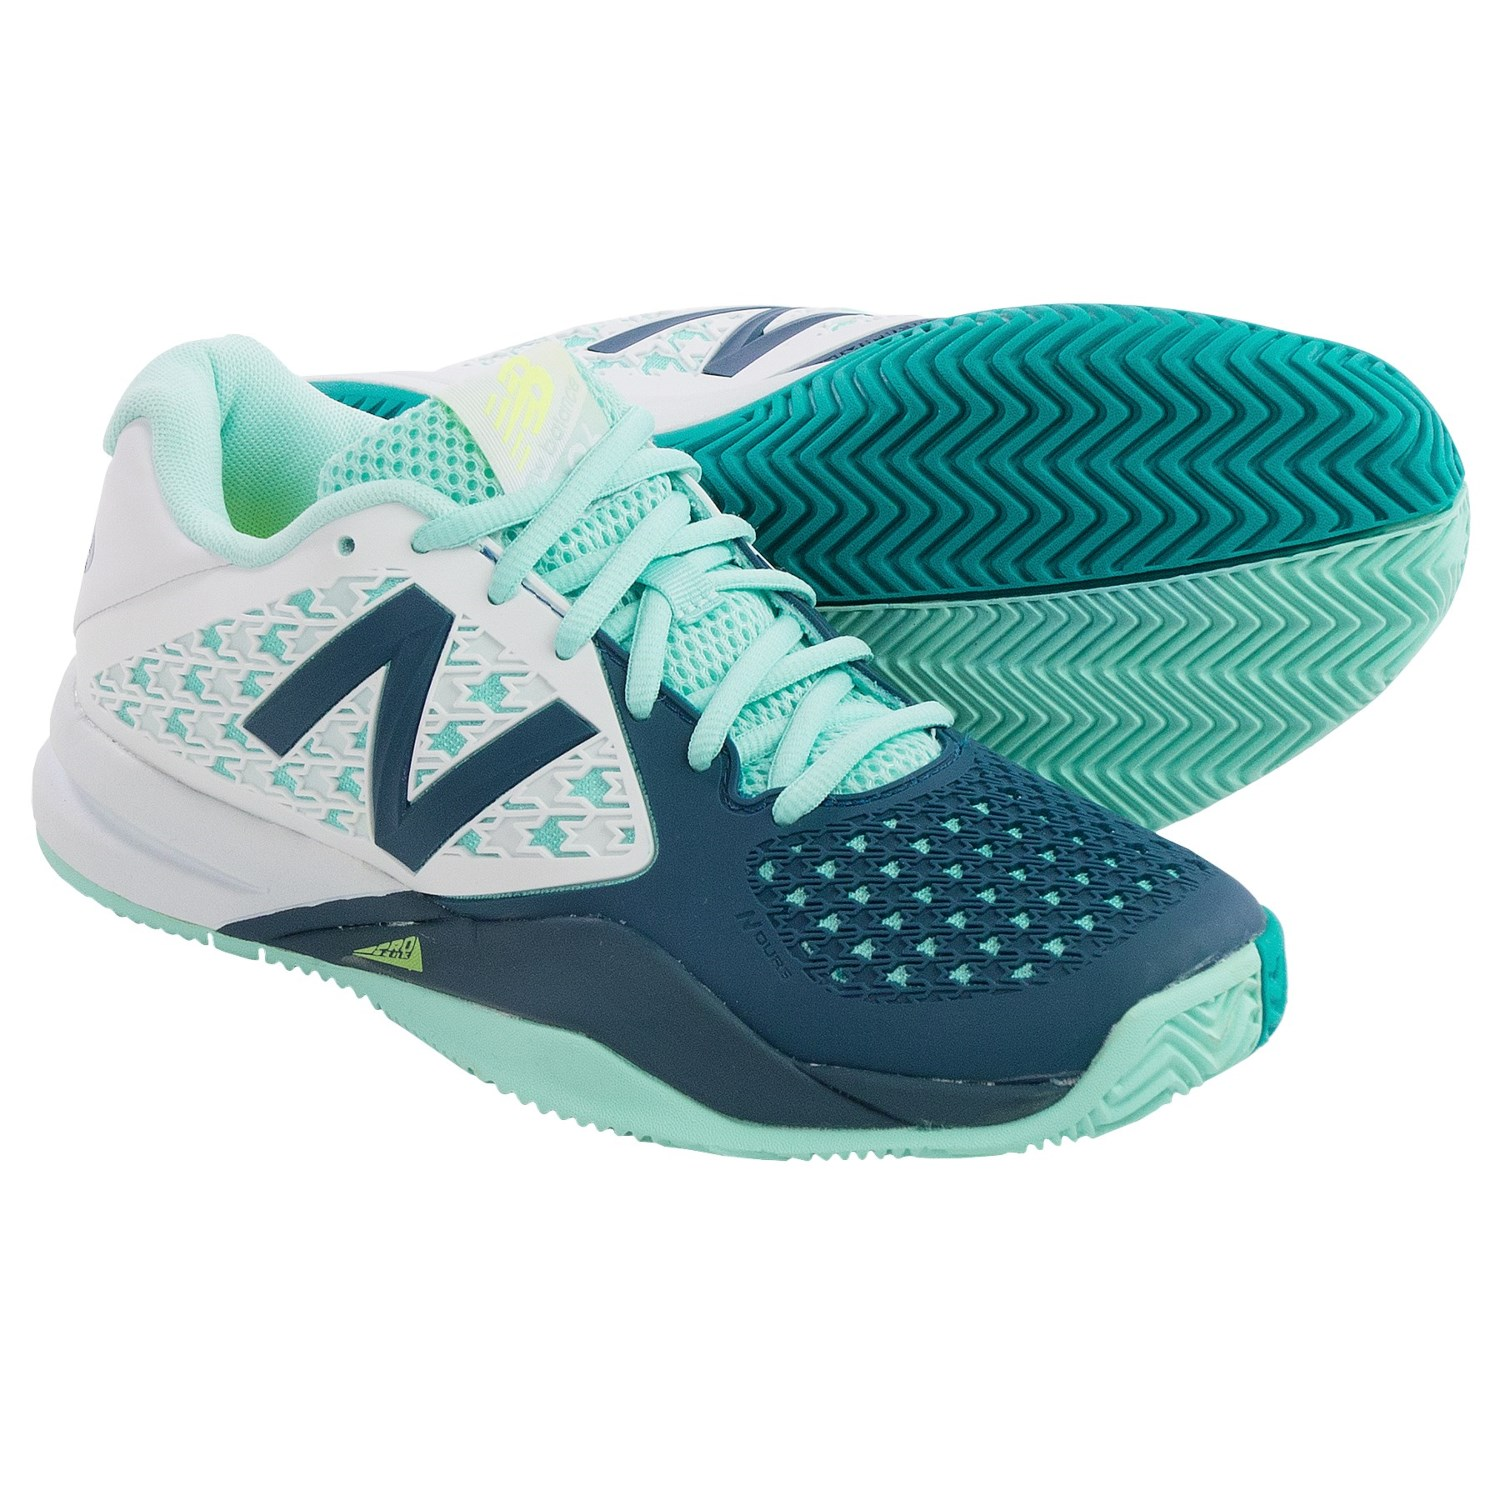 new balance 996 tennis shoes for save 41